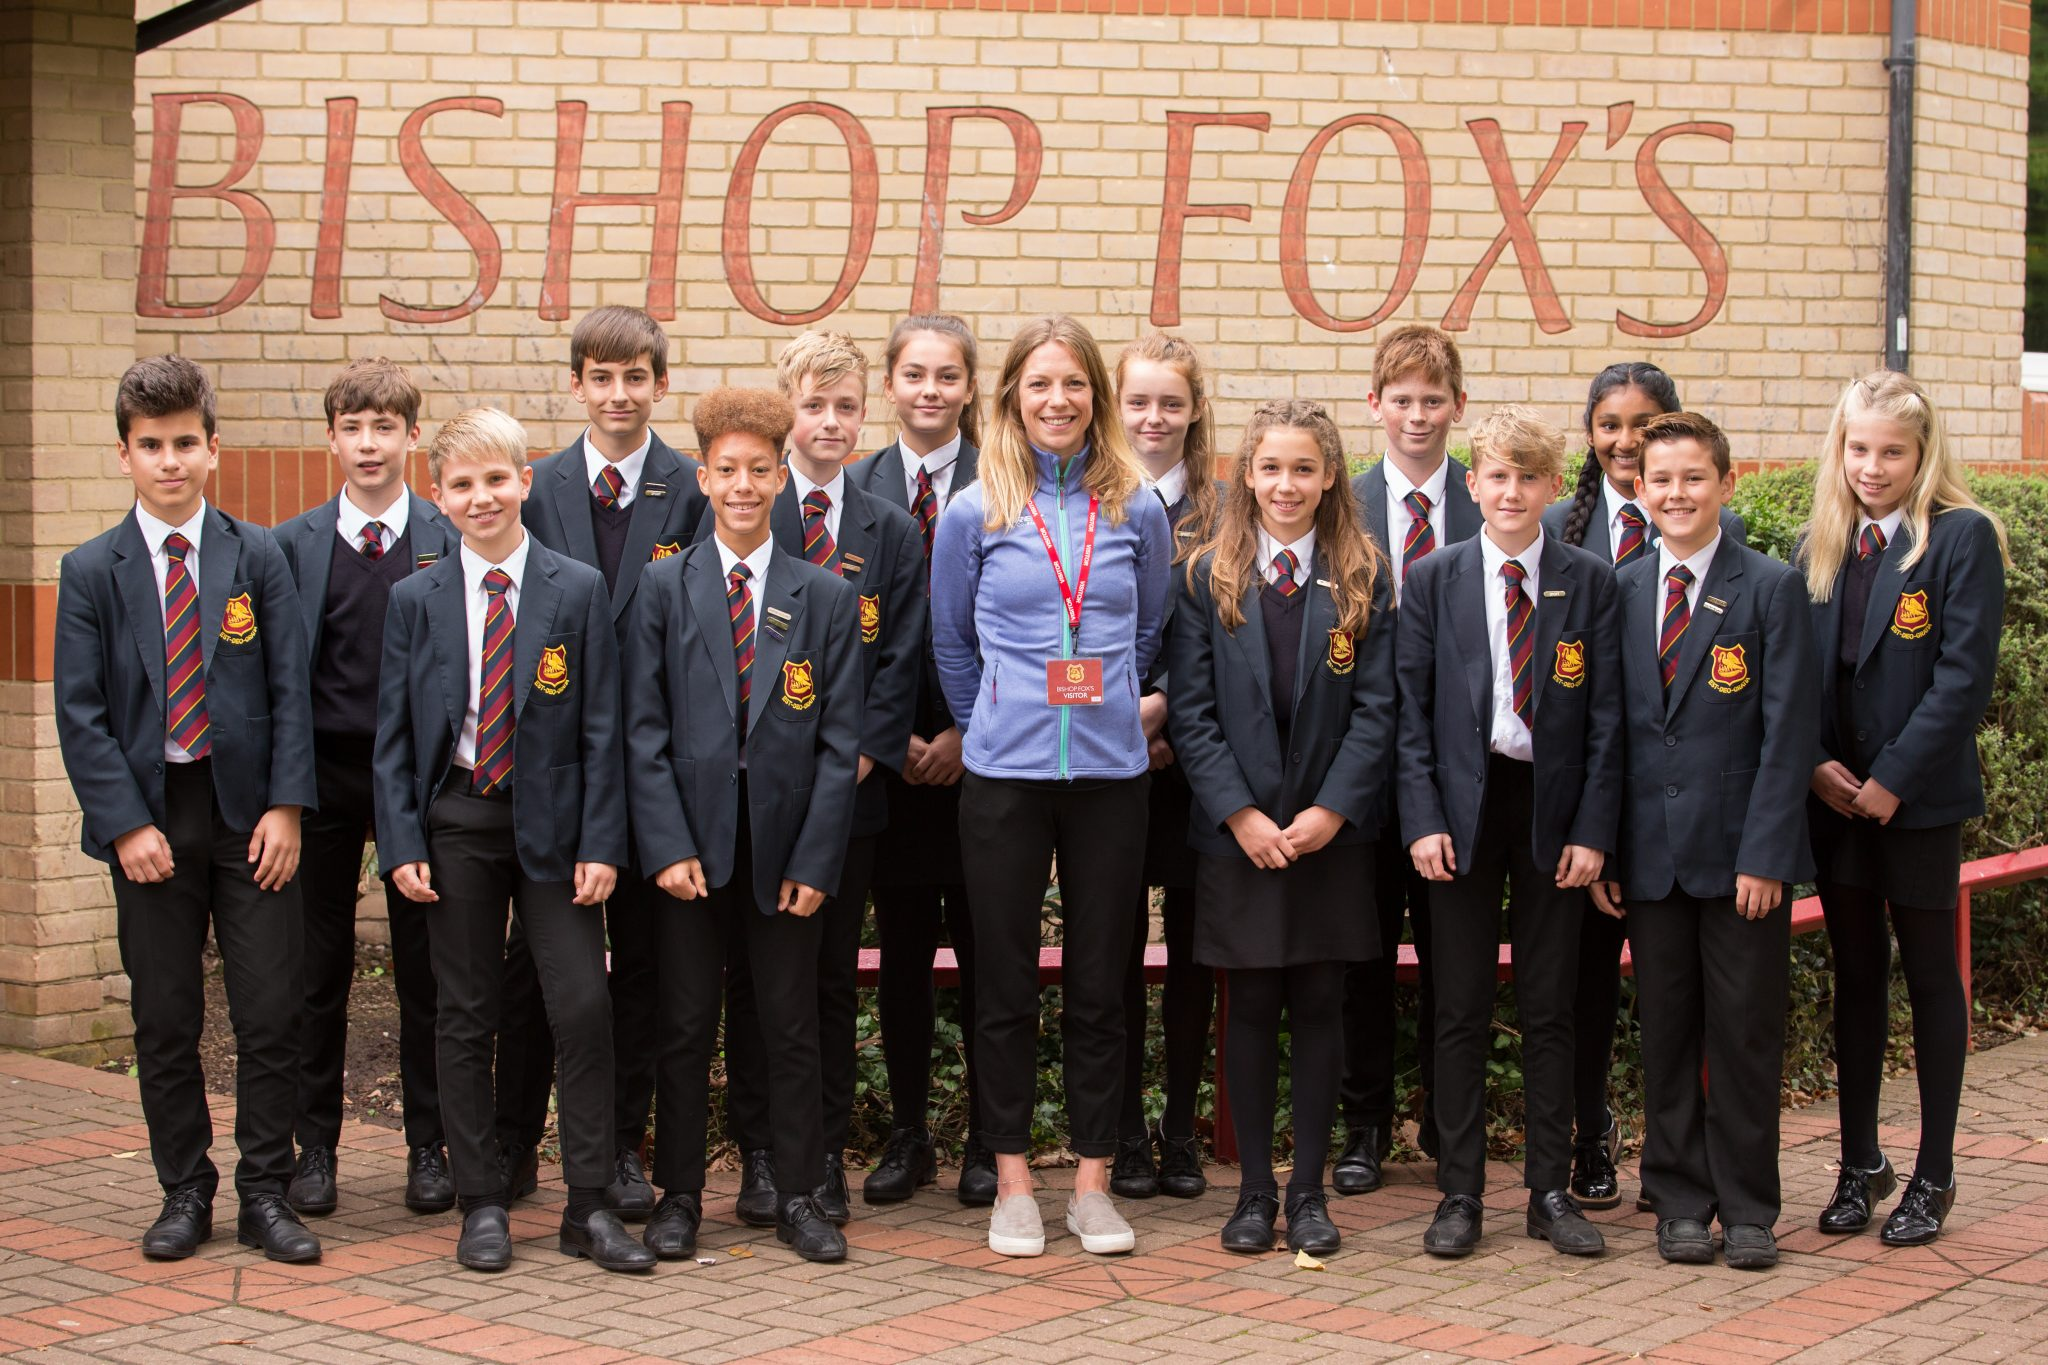 f7405d53e Holly Lawrence - 25/09/17 - Bishop Fox's School